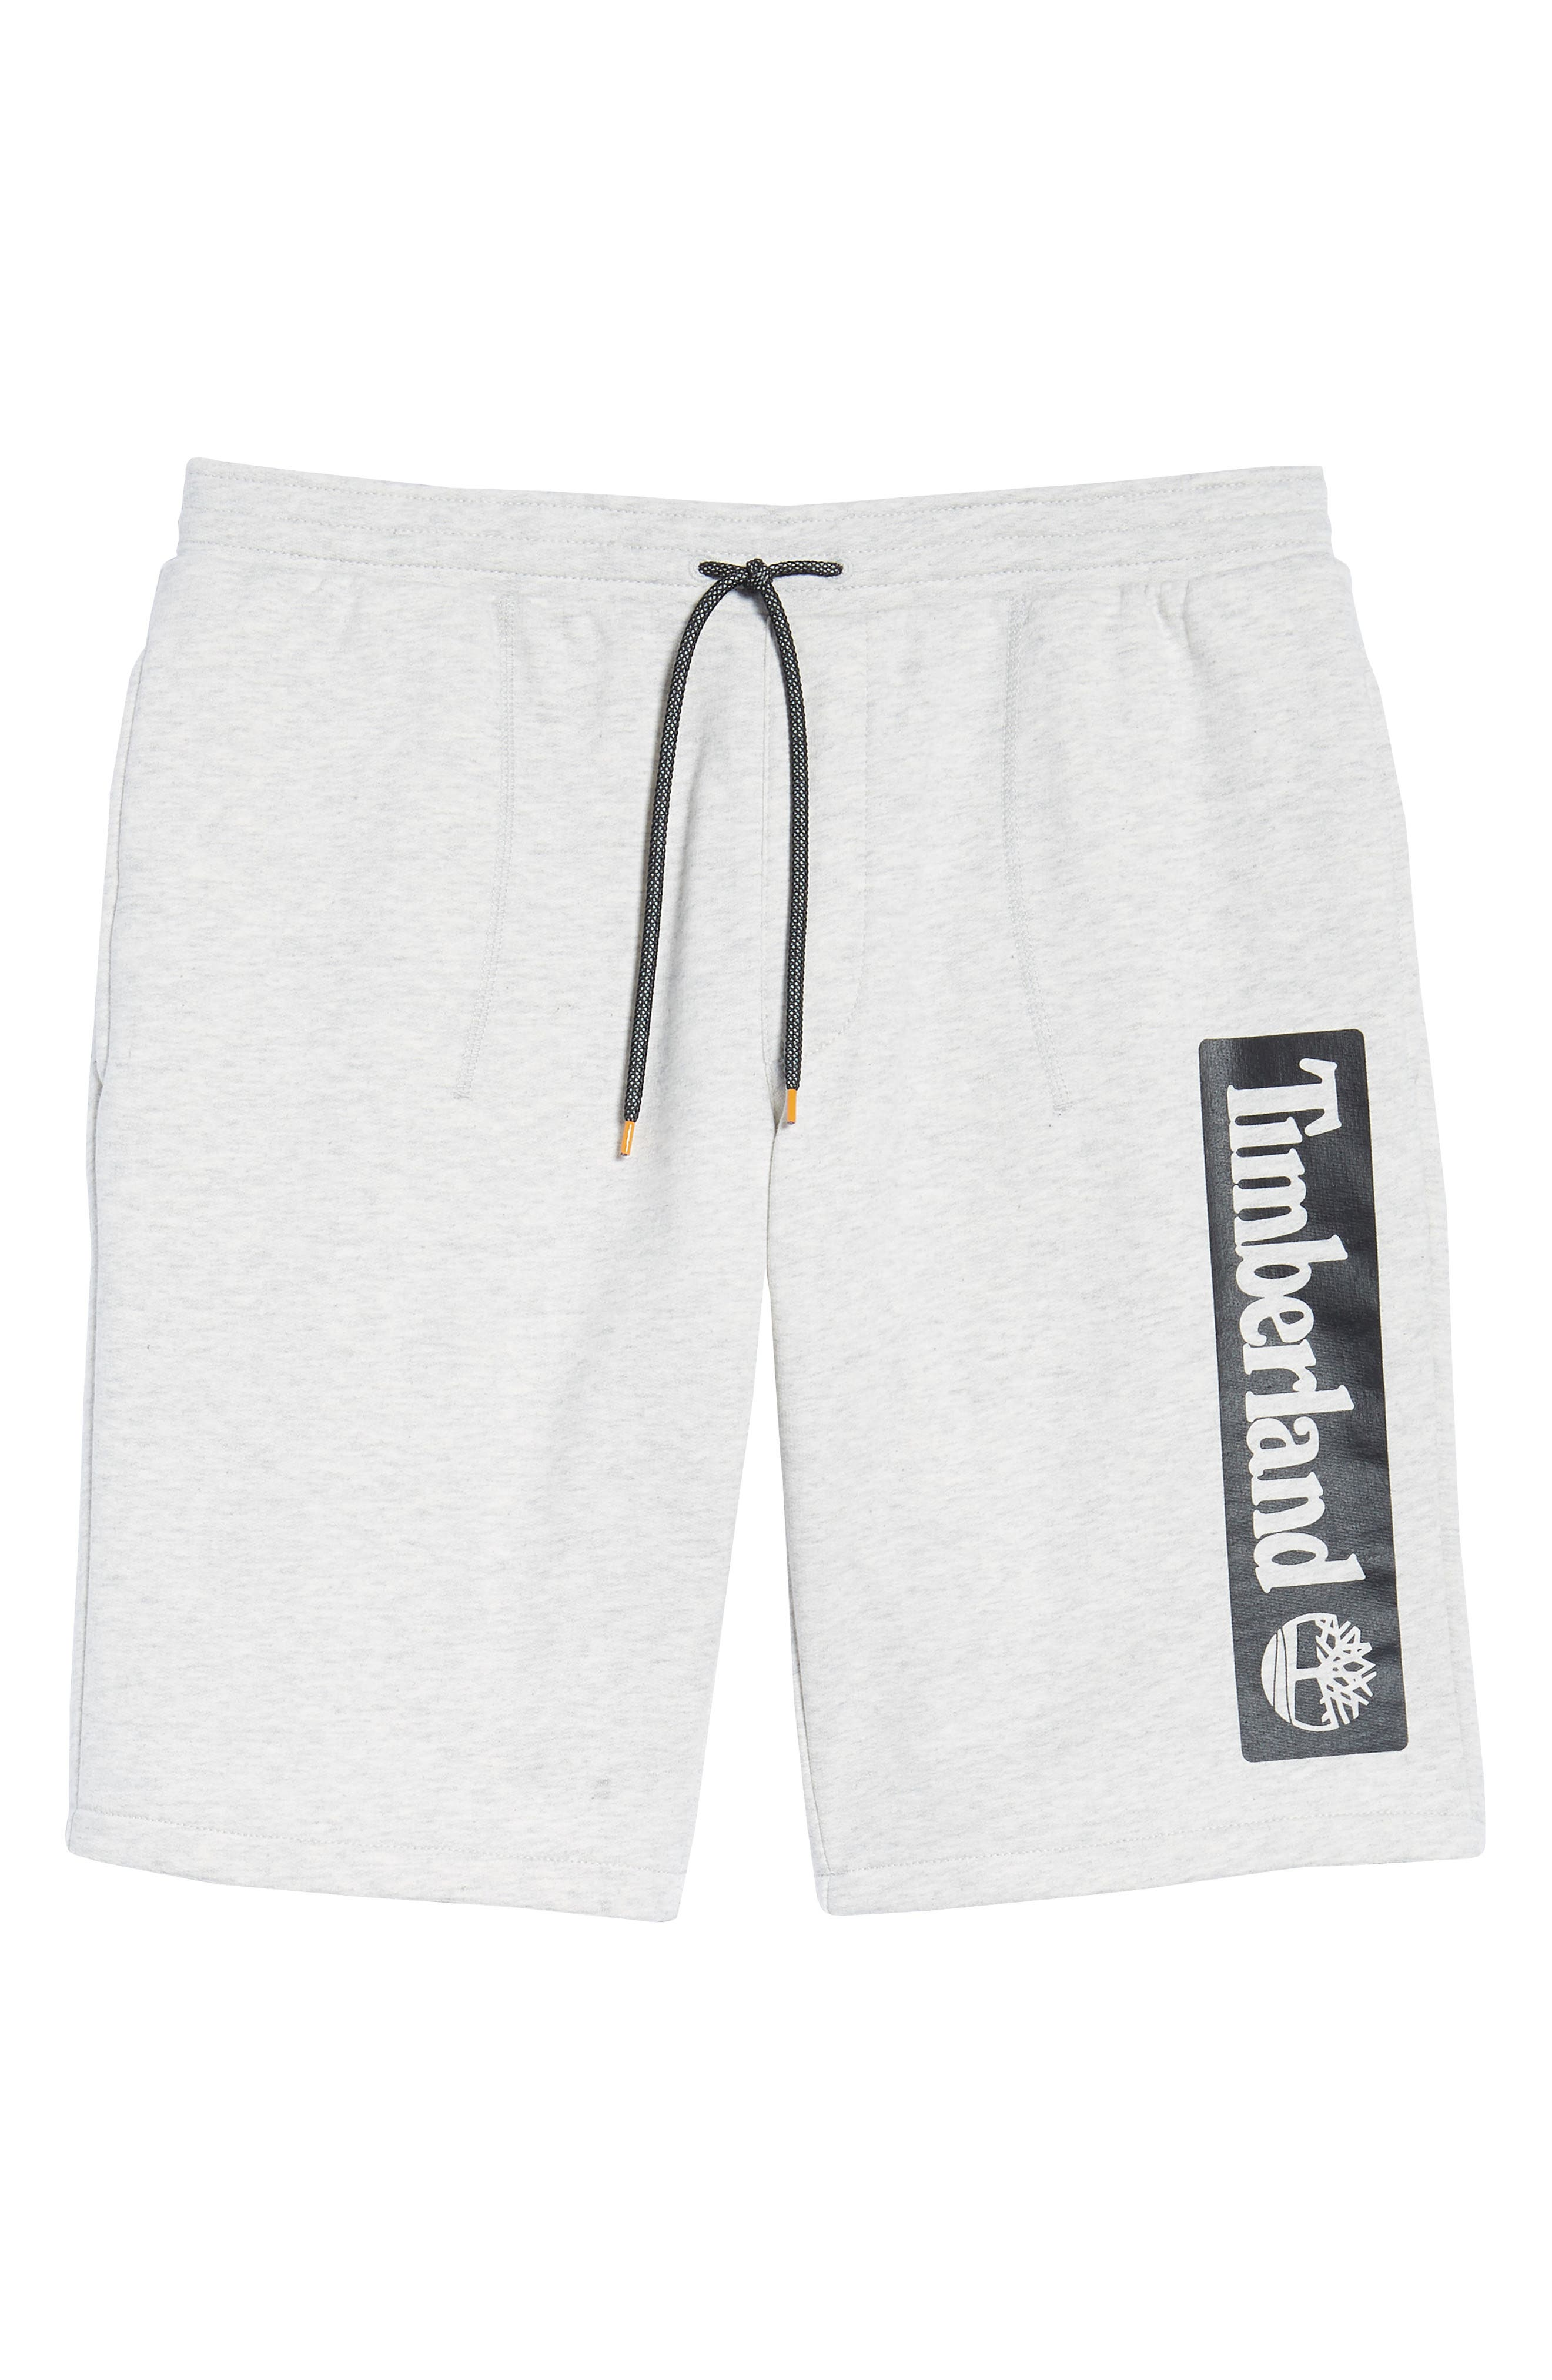 Logo Jogger Shorts,                             Alternate thumbnail 6, color,                             Micro Chip Heather